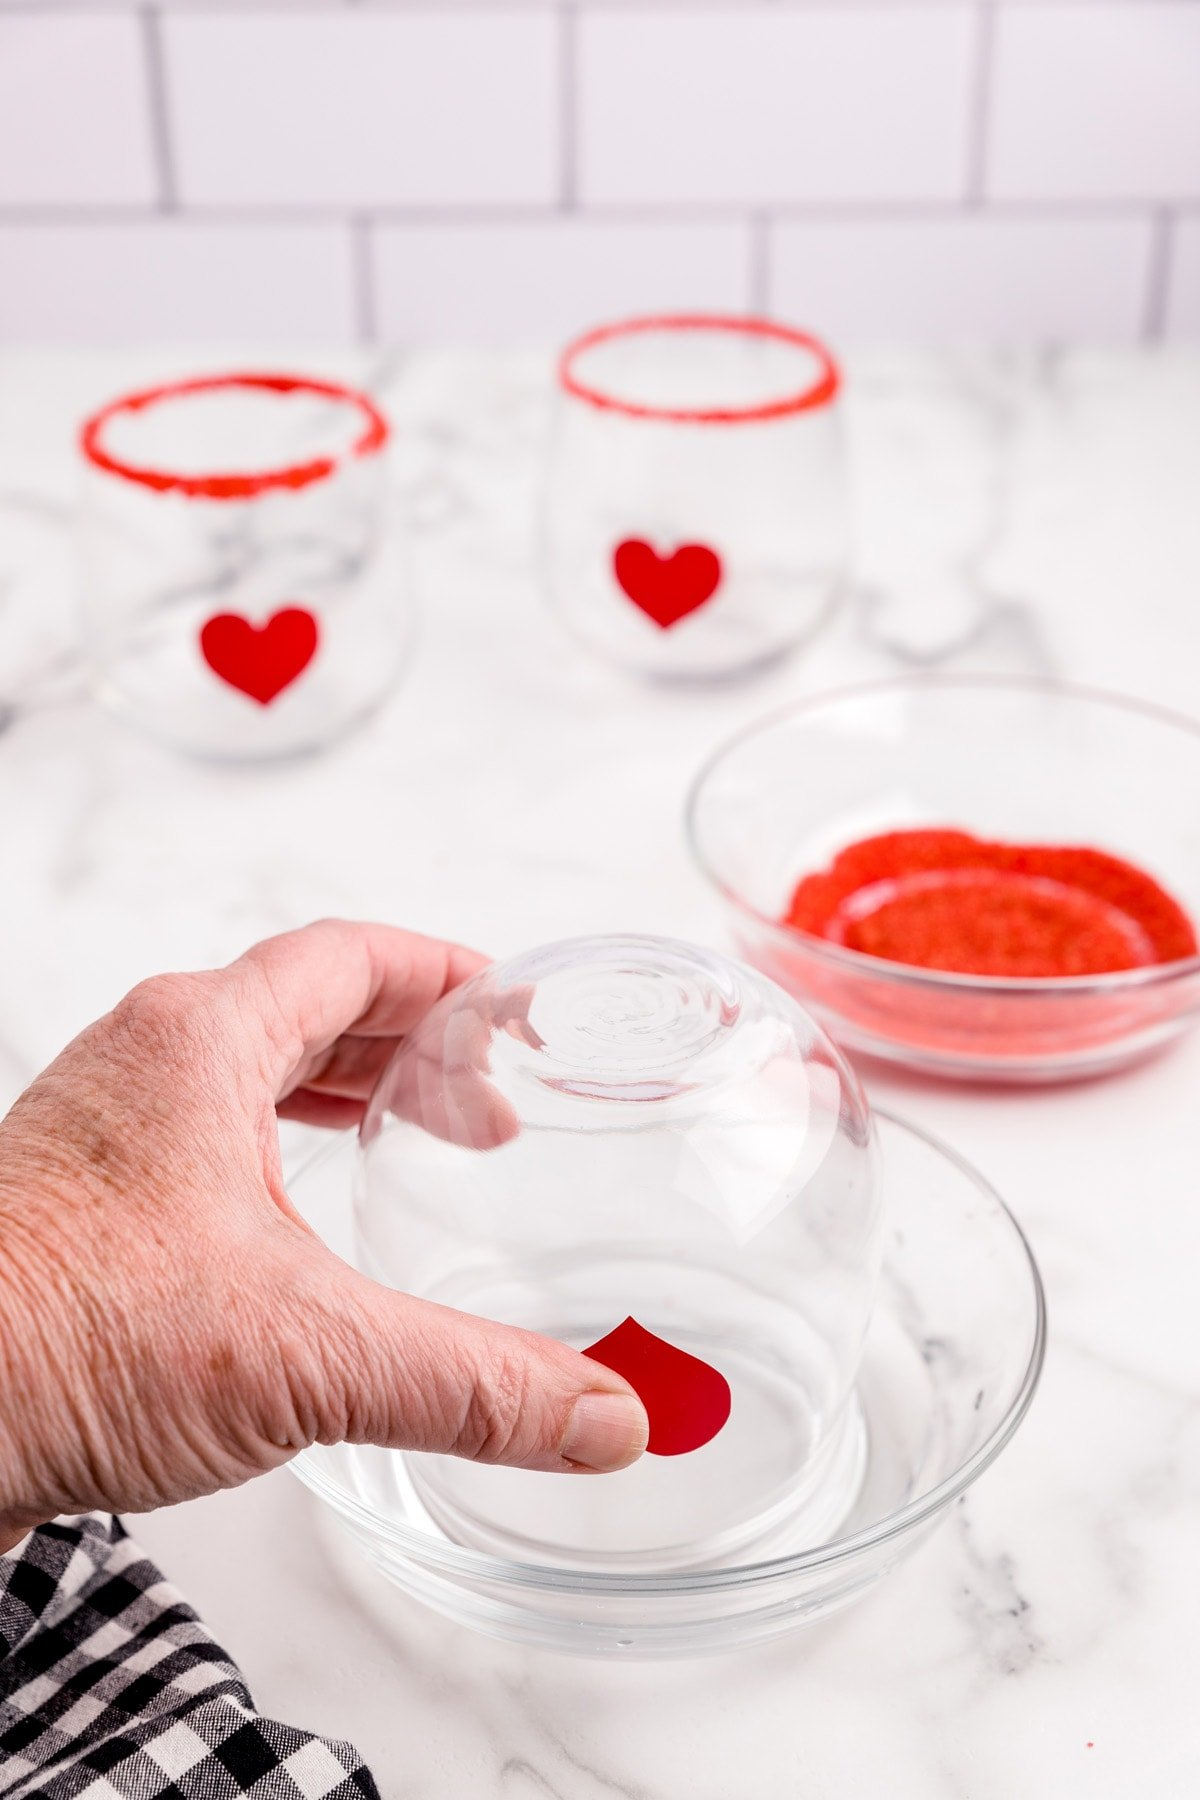 Dip the rim of each glass in water